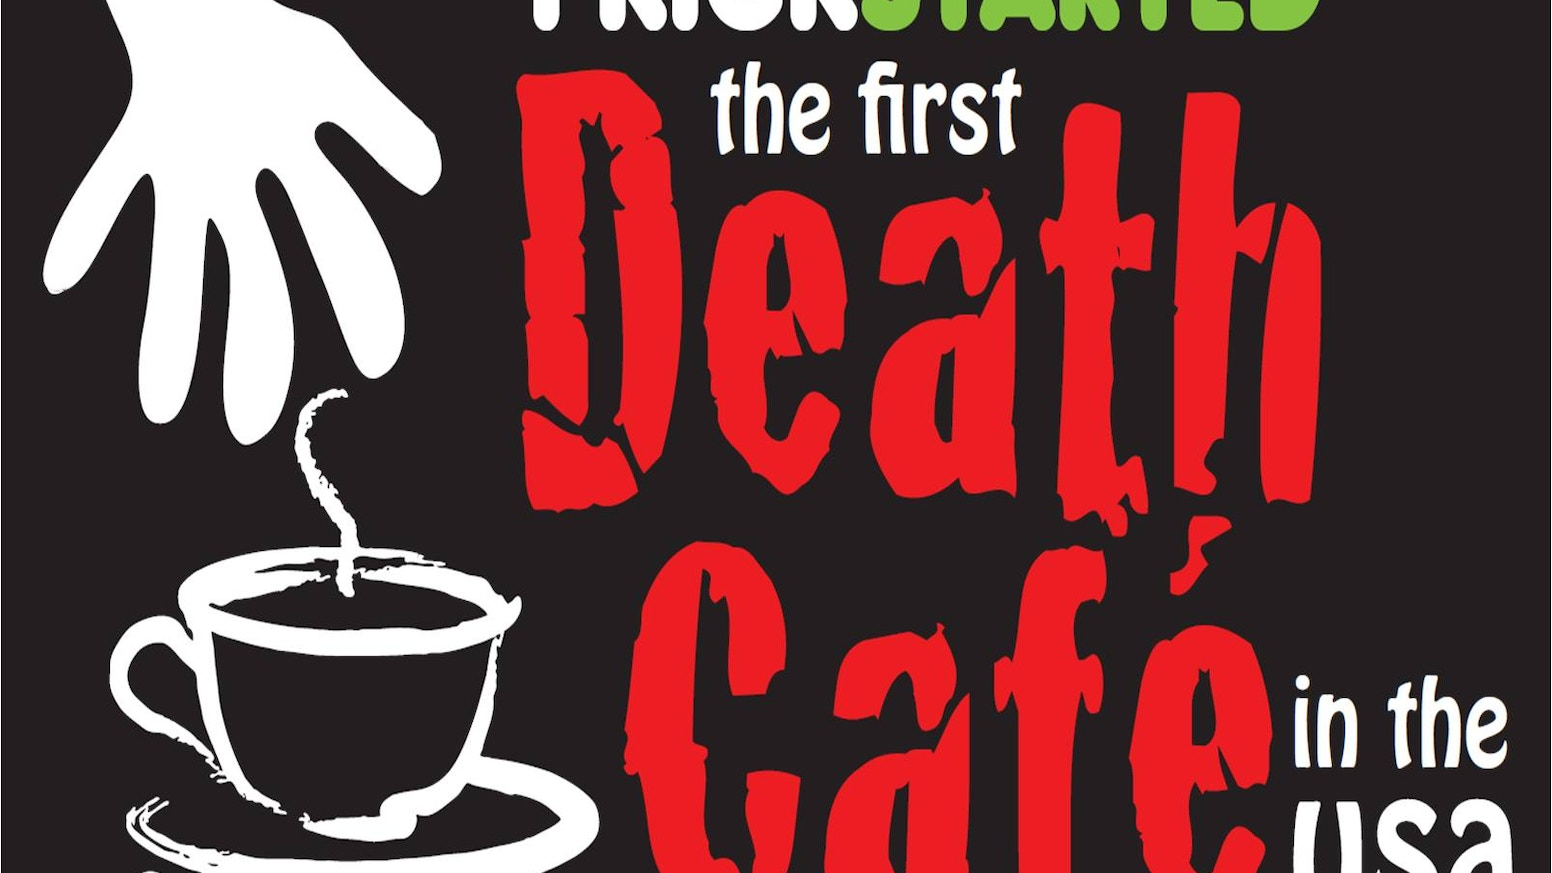 A Death Cafe is a pop-up event where people get together to talk about death and have tea and delicious food. Death Cafe has now evolved to a worldwide grassroots movement with 2800+ events in 33 countries. Visit deathcafe.com to find an event near you.